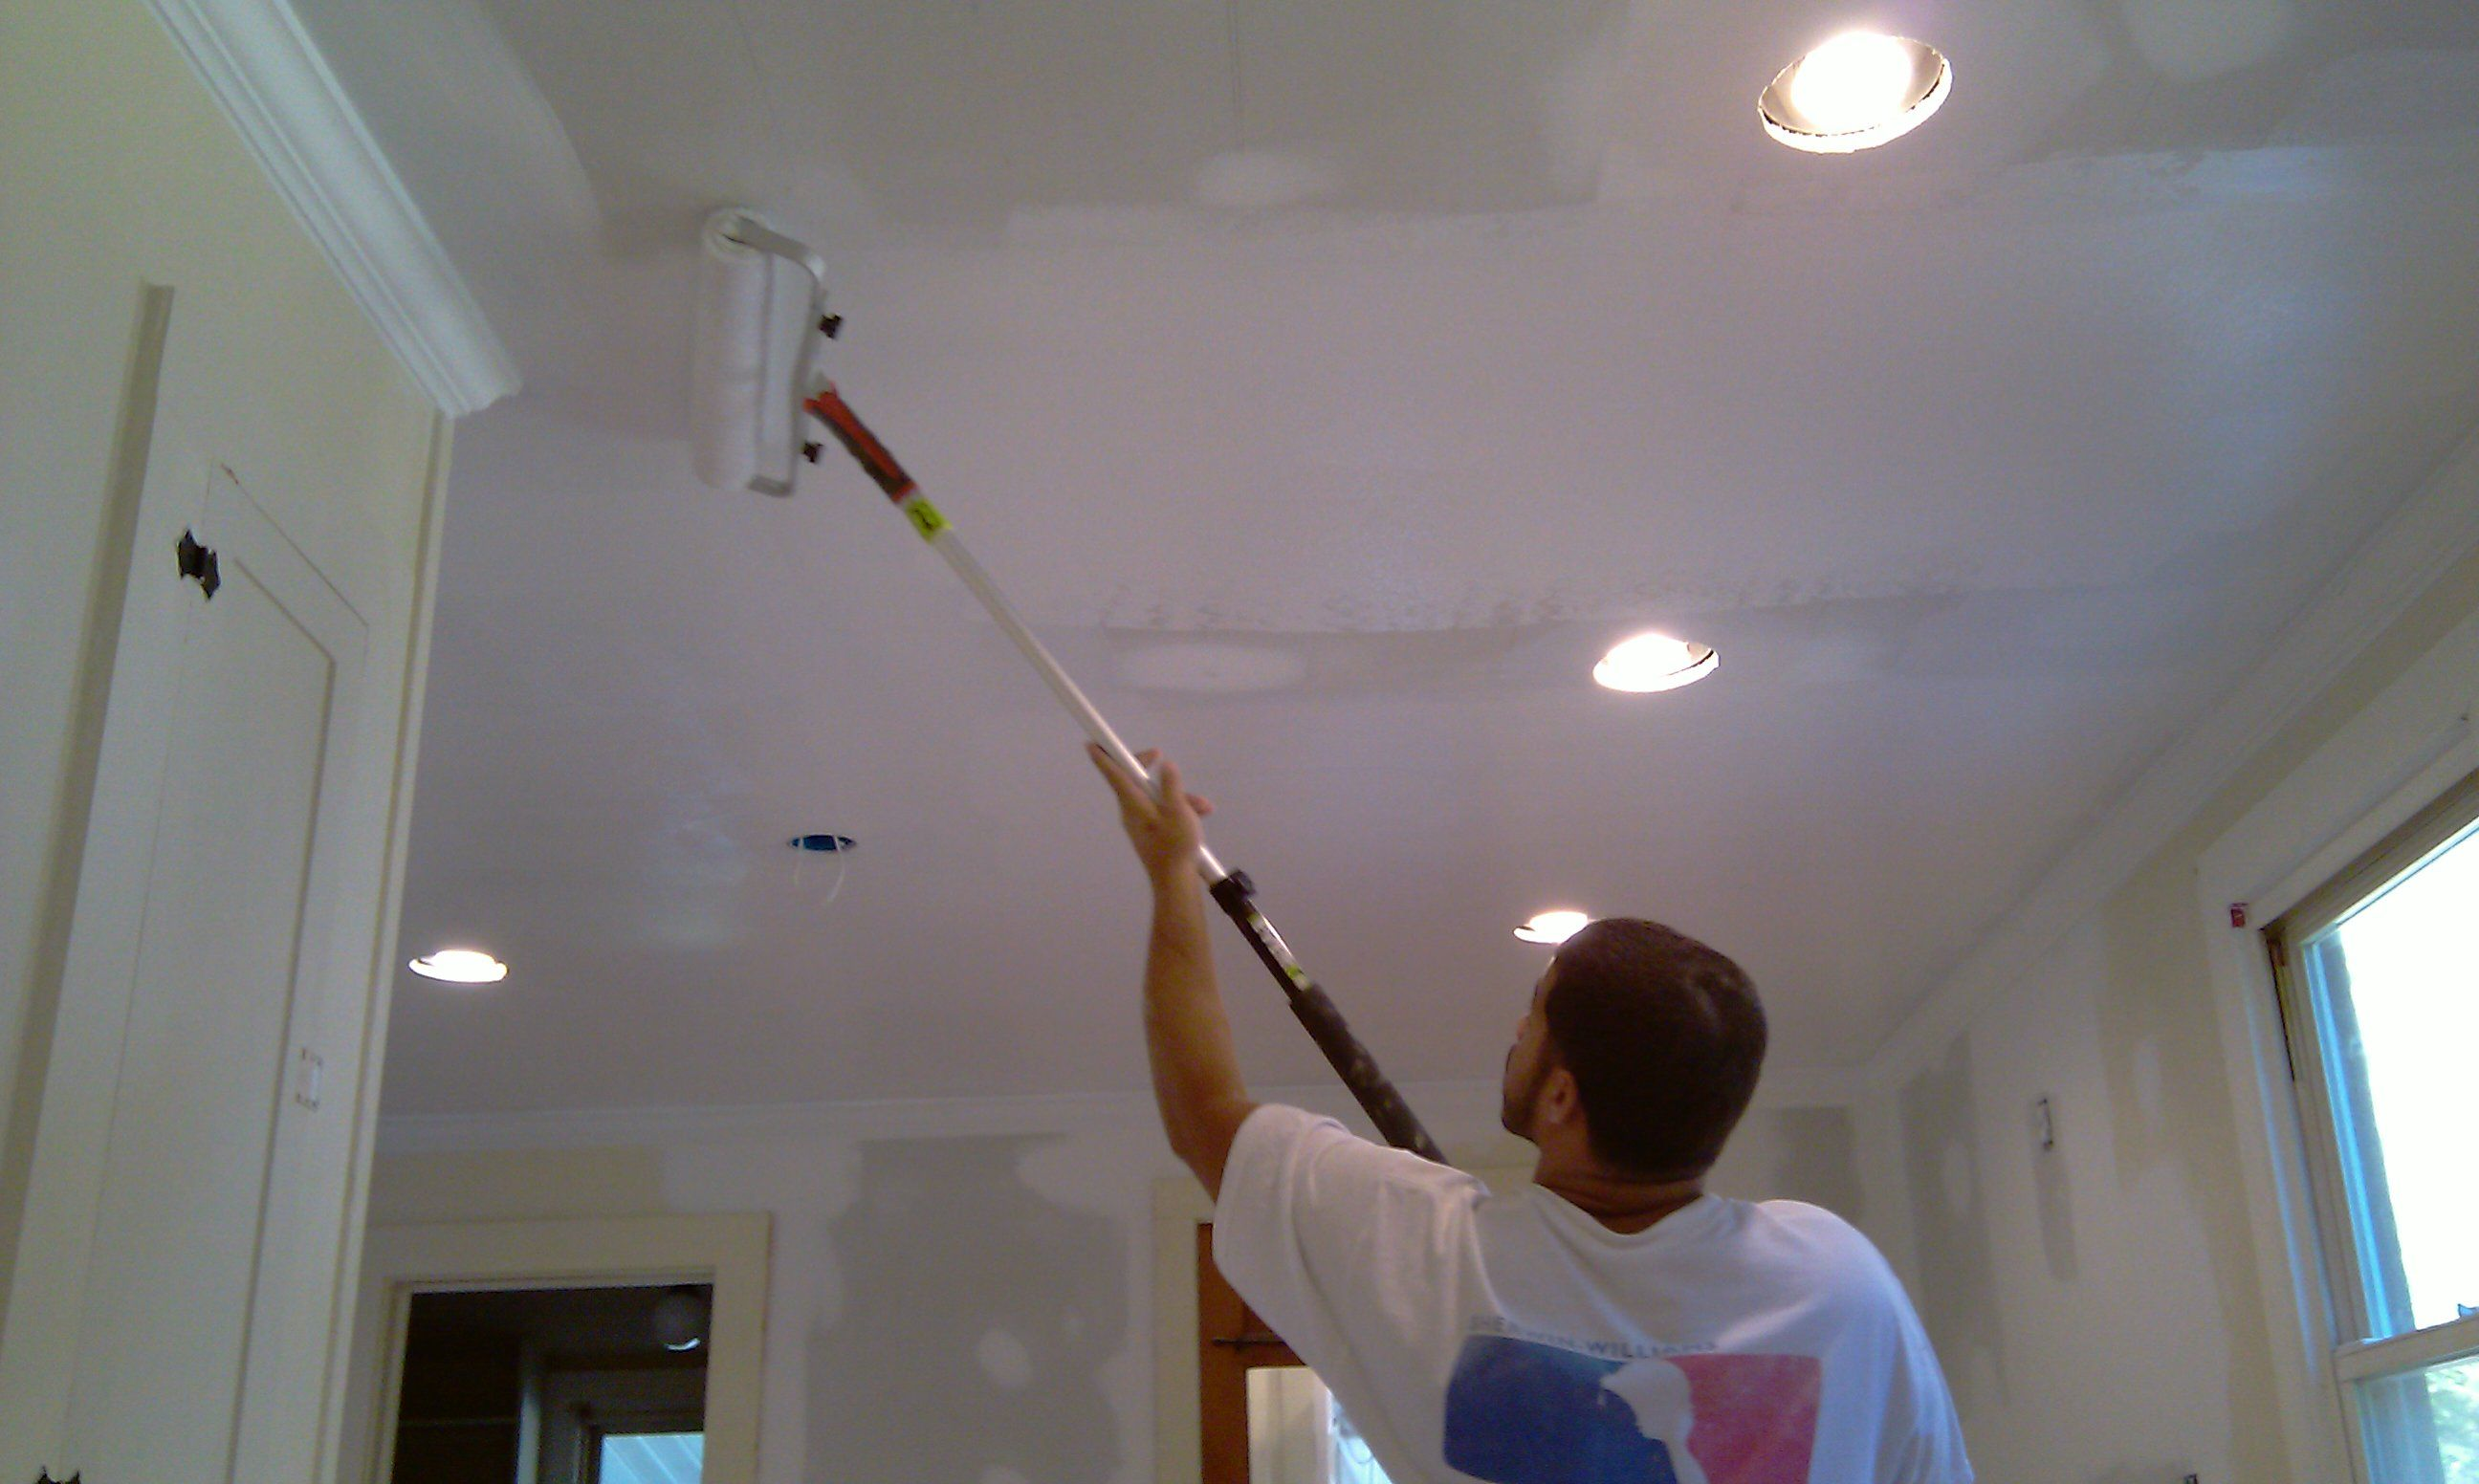 Savannah Painting Offers Professional Painting Services To Paint Buildings And Flats With An Amazing Colo Painting Contractors House Painting Painting Services